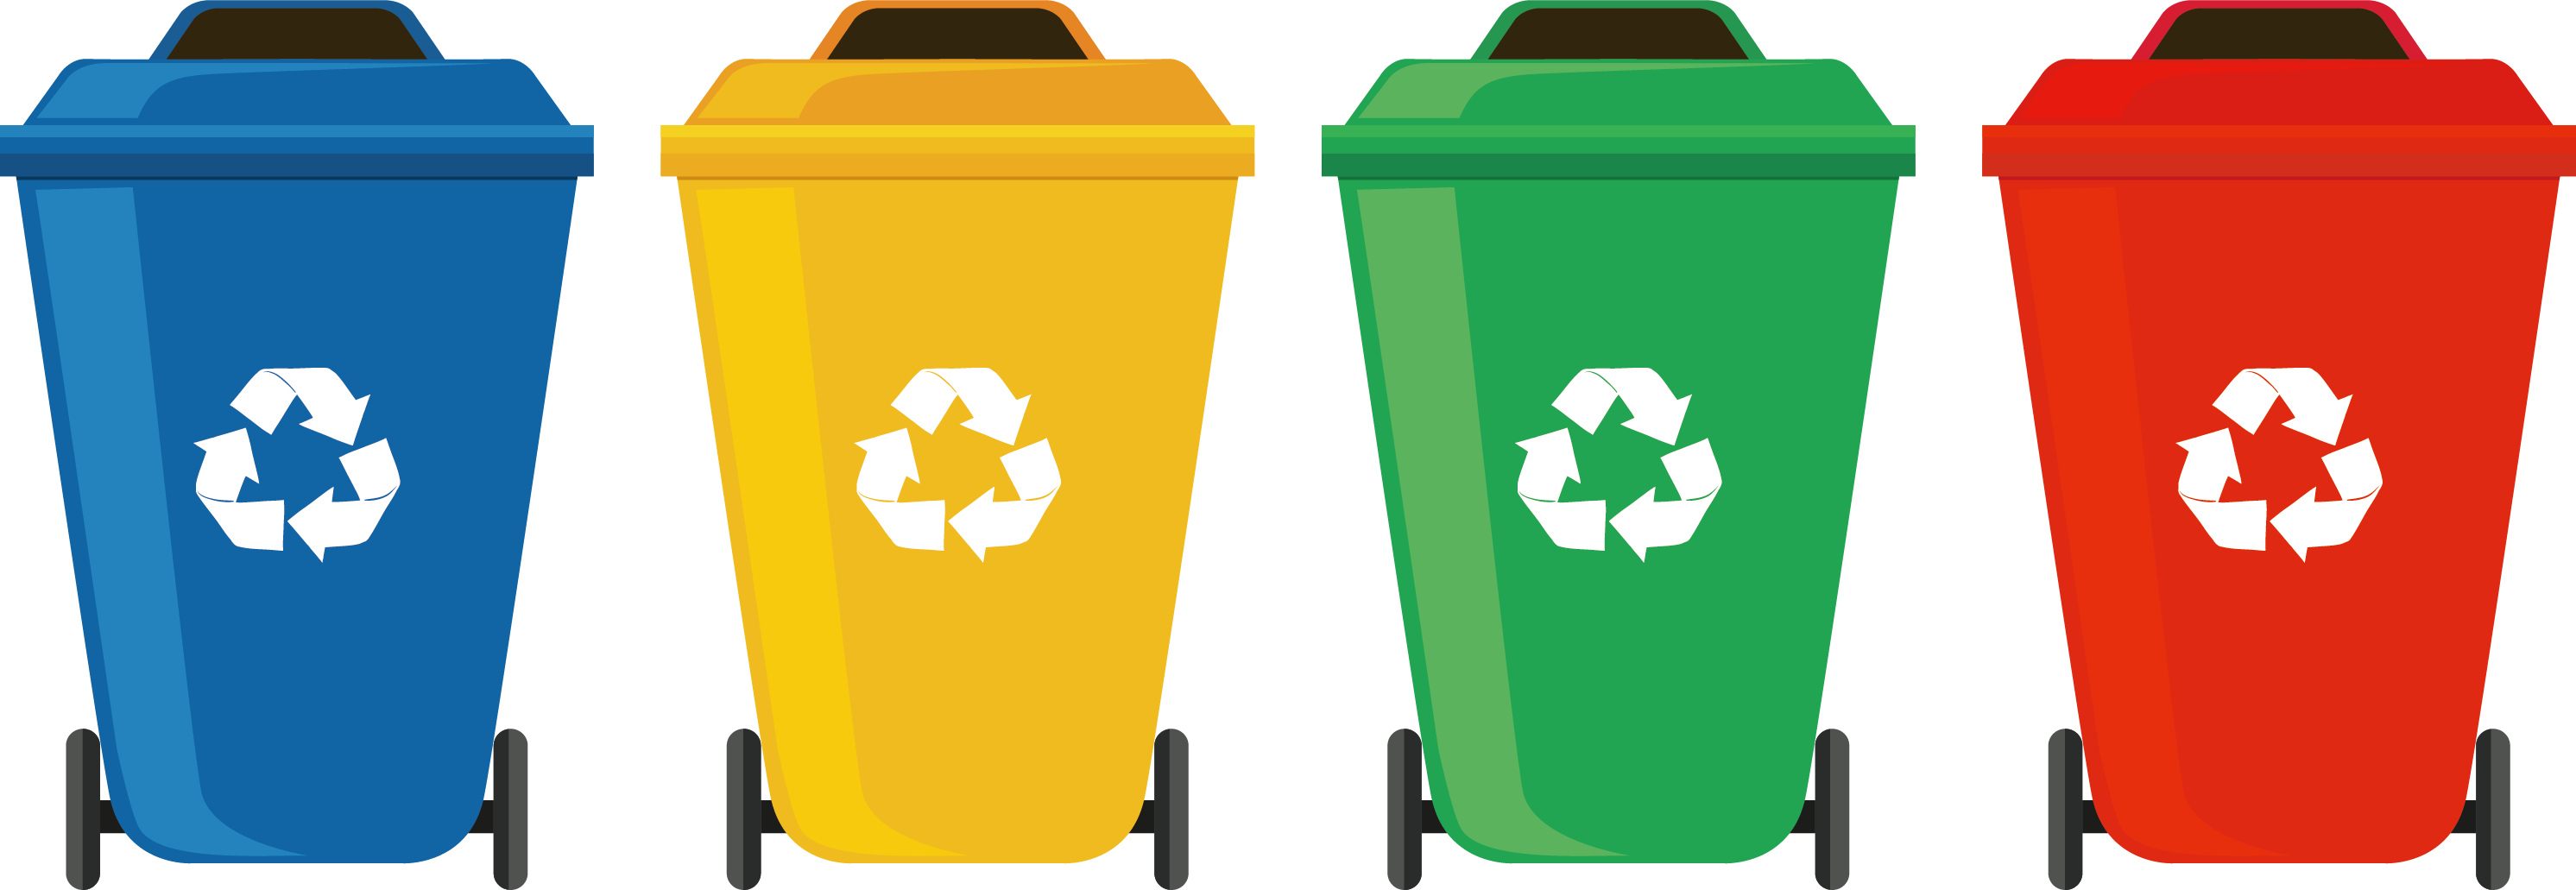 Garbage clipart wastebin. Waste container recycling bin